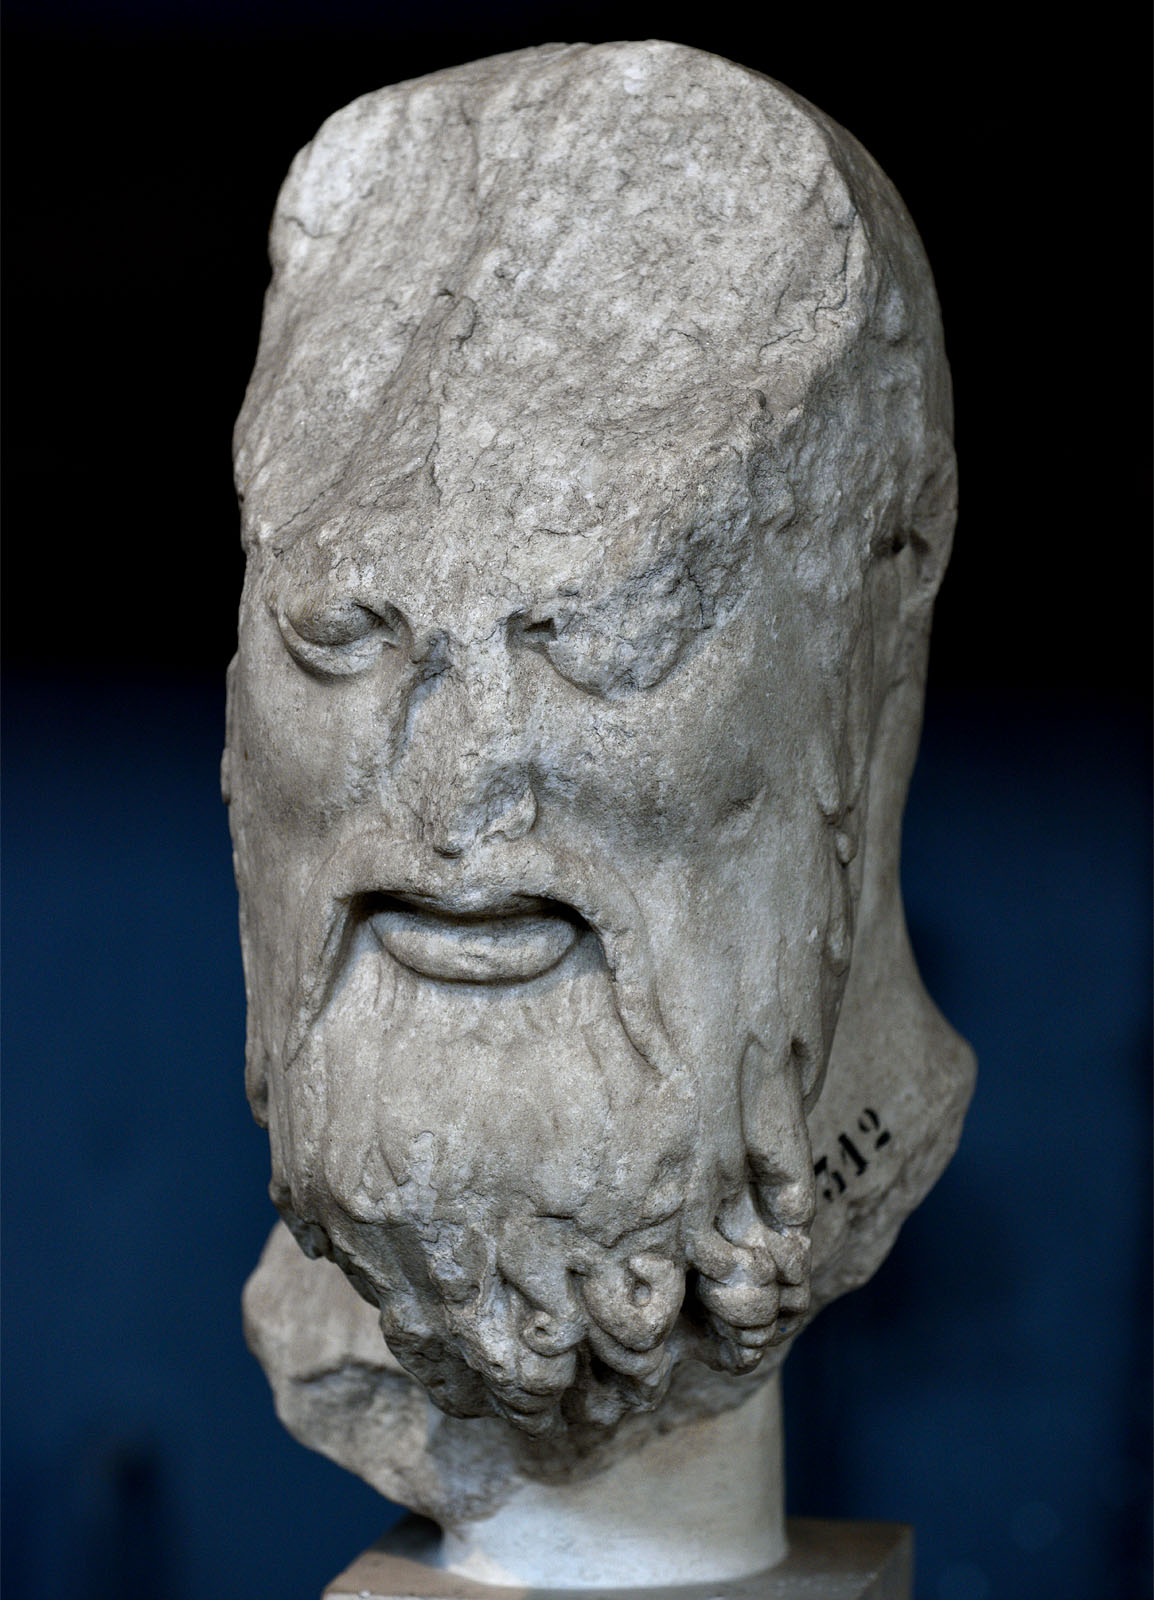 Head of Aristogeiton (fragment of a statuary group of the Tyrannicides). Marble from Luni. Roman copy after a Kritios and Nesiotes model of 475—465 BCE. Inv. No. MC 2312. Rome, Capitoline Museums, Museum Montemartini (Centrale Montemartini), II. 23